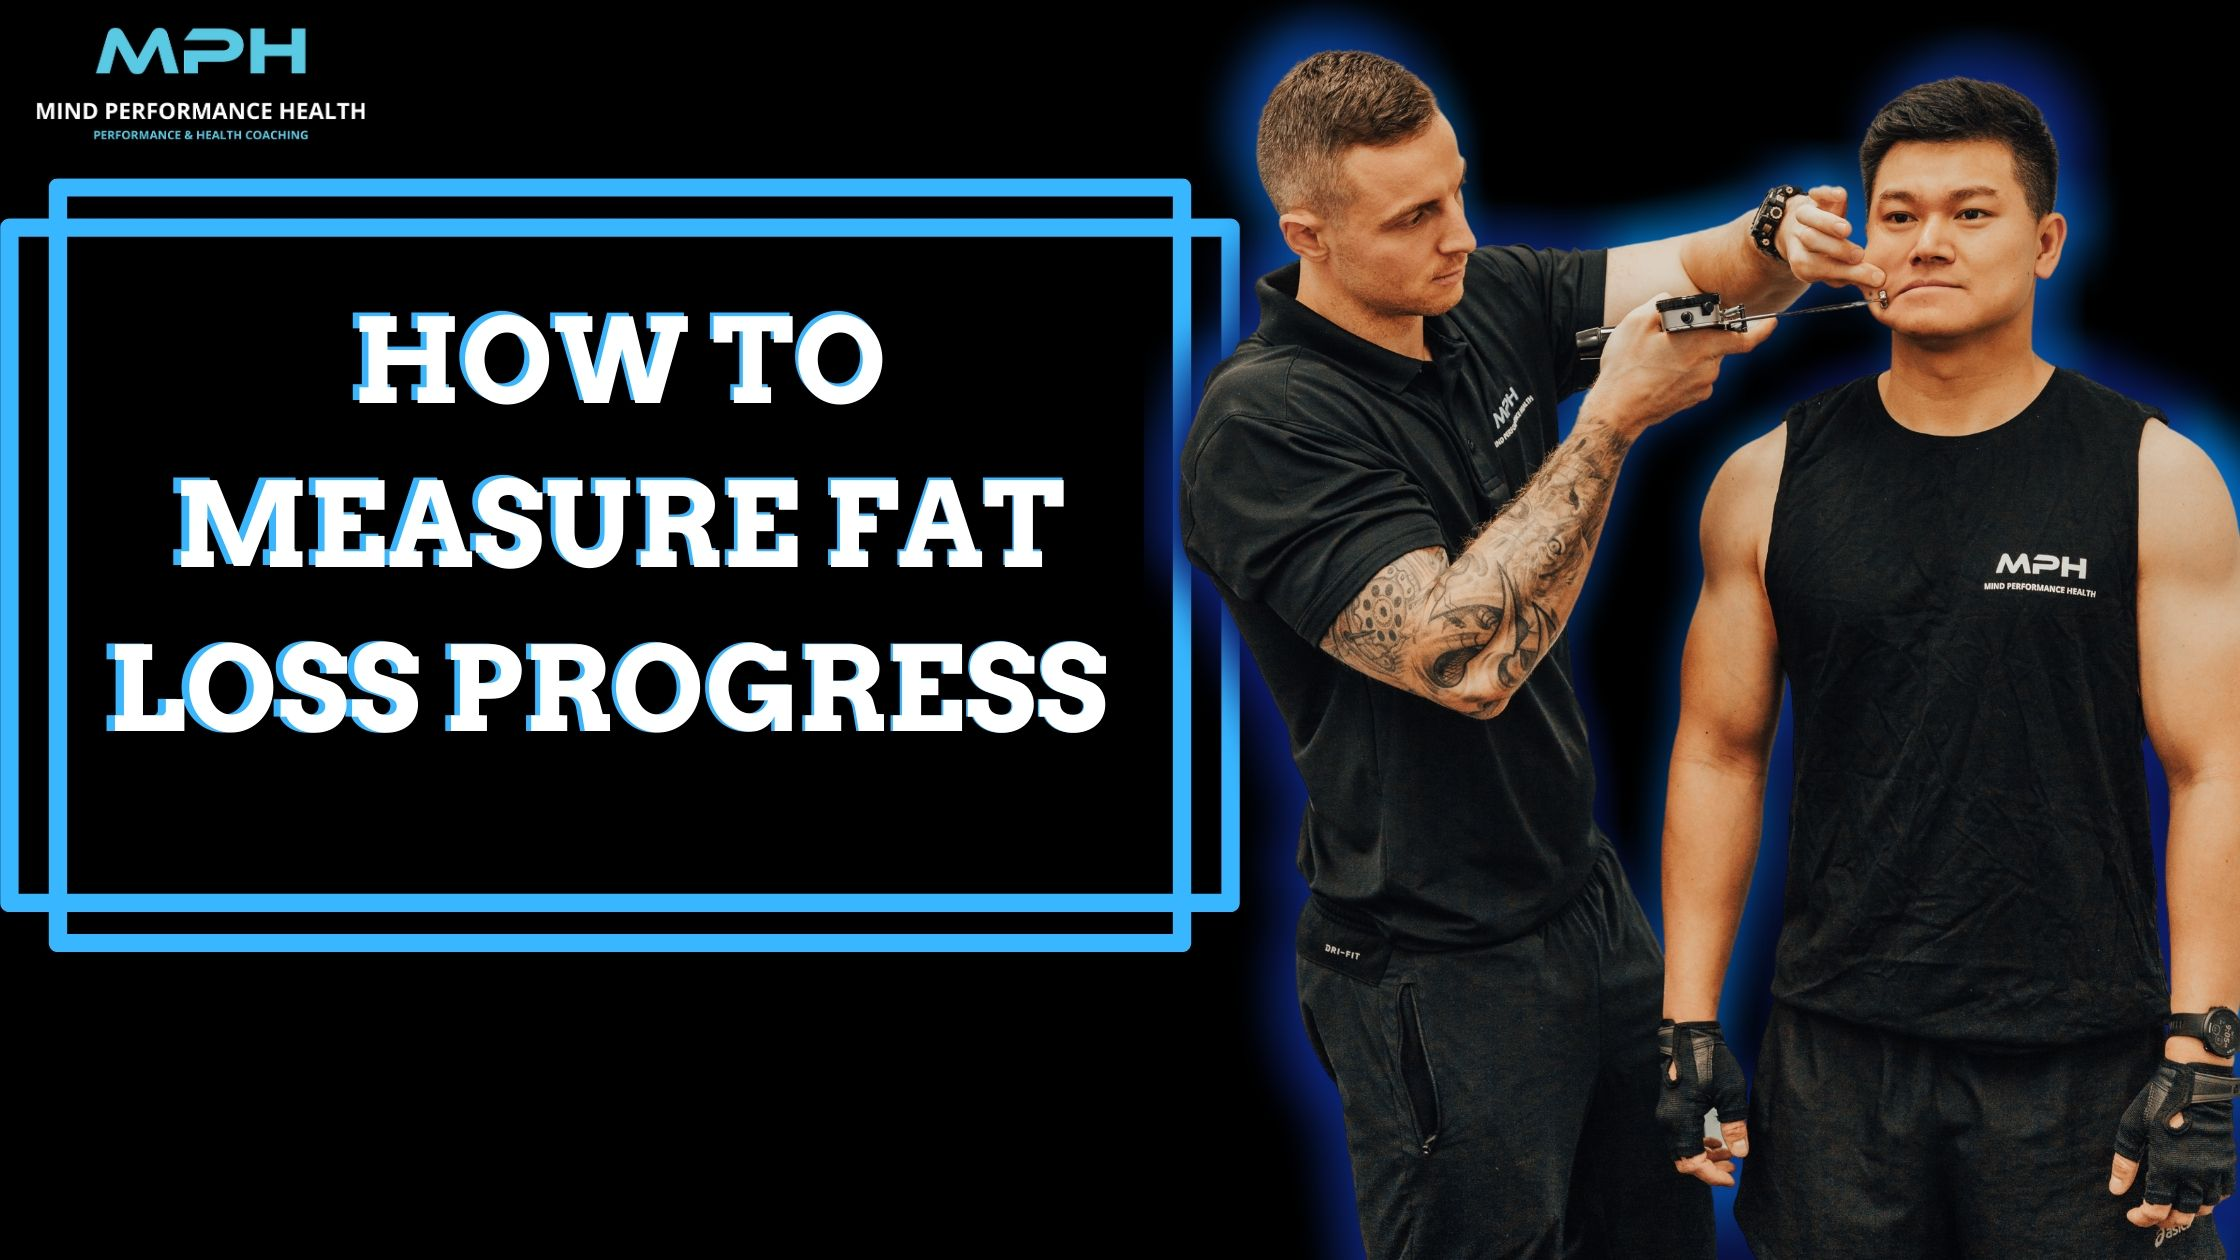 How To Measure Fat Loss Progress